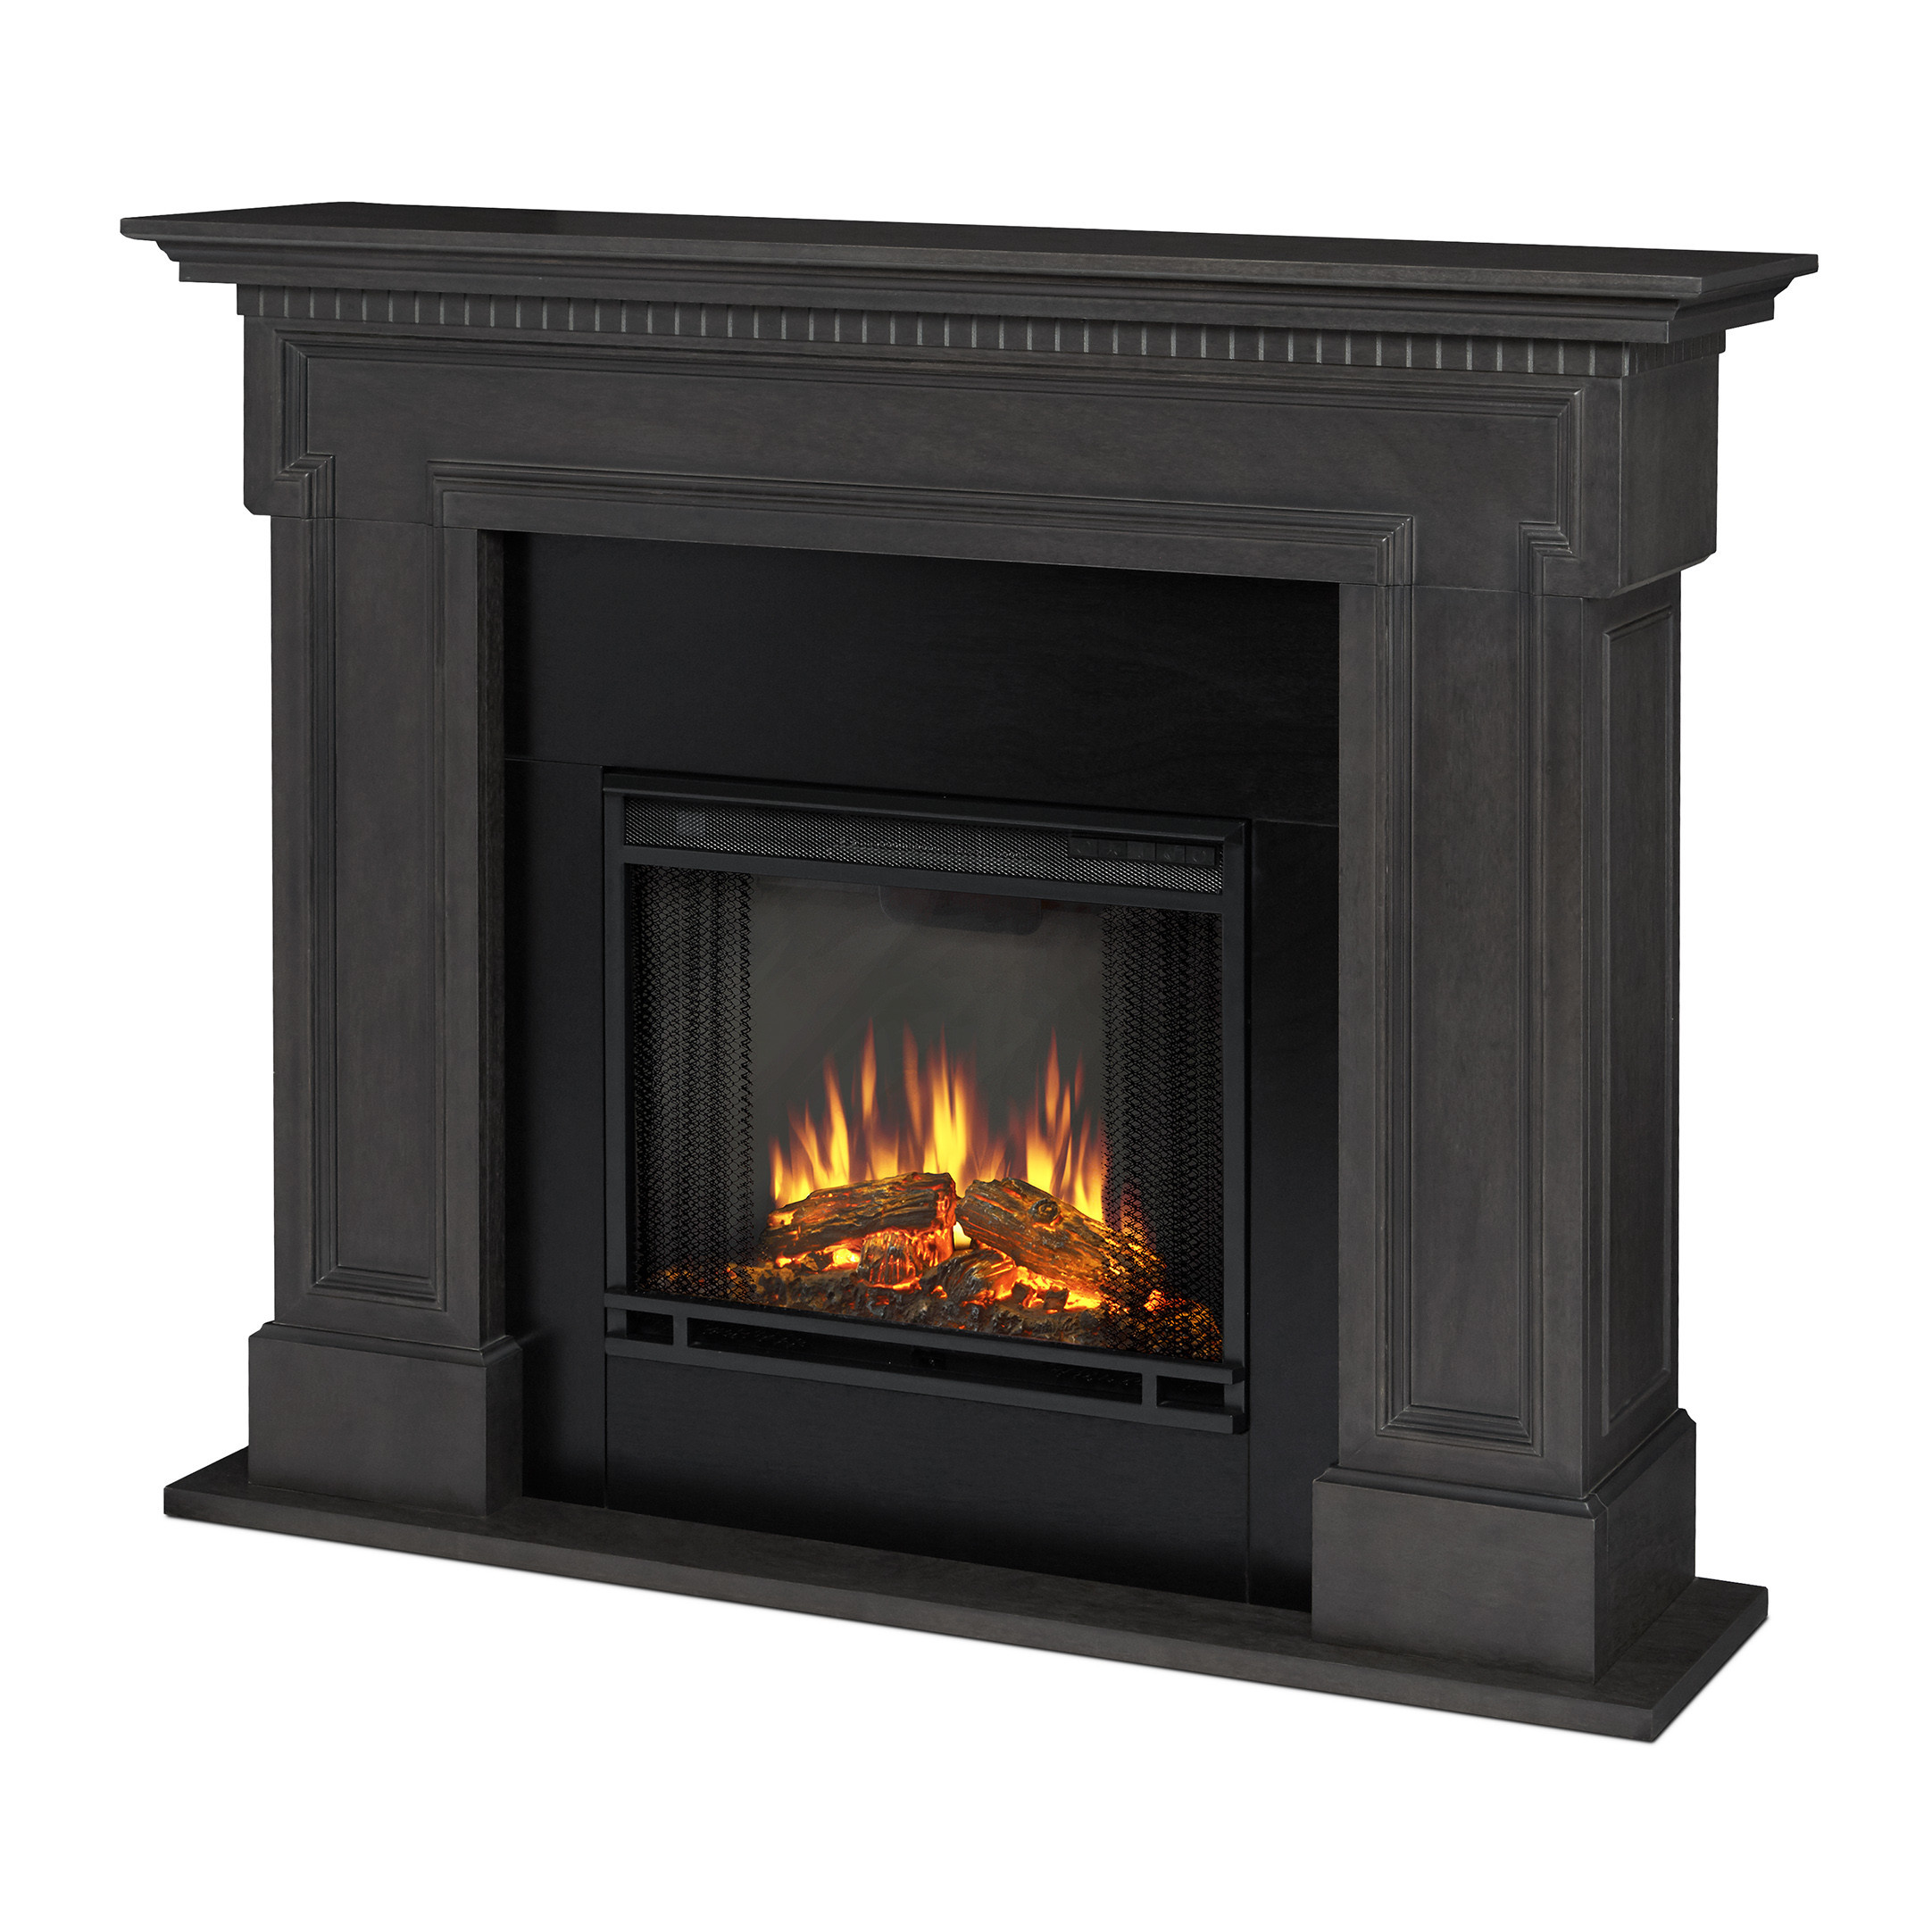 Best ideas about Real Flame Electric Fireplace . Save or Pin Real Flame Real Flame Thayer Electric Fireplace & Reviews Now.